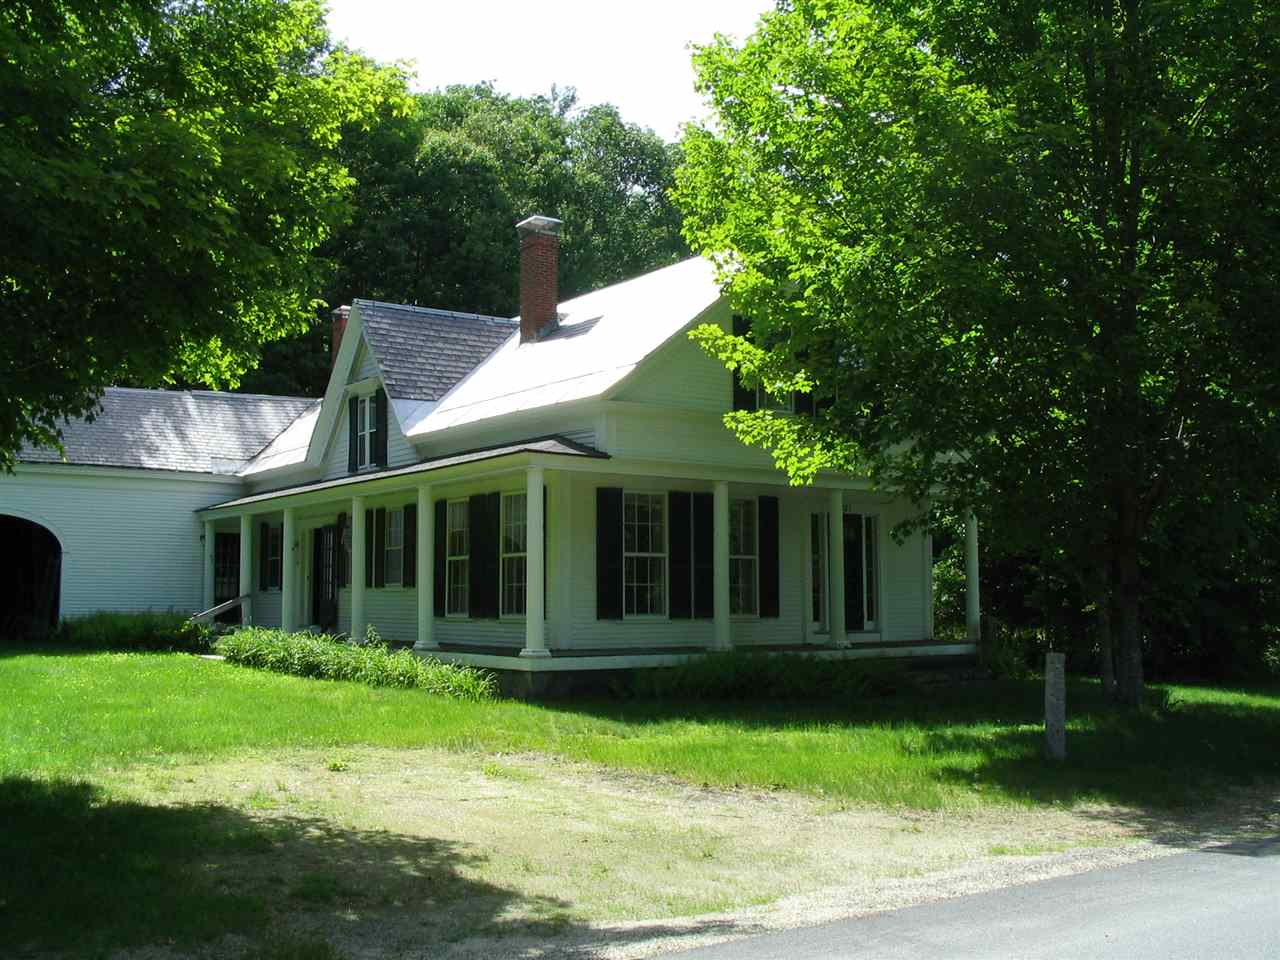 MLS 4763263: 281 MIDDLE Road, Hancock NH